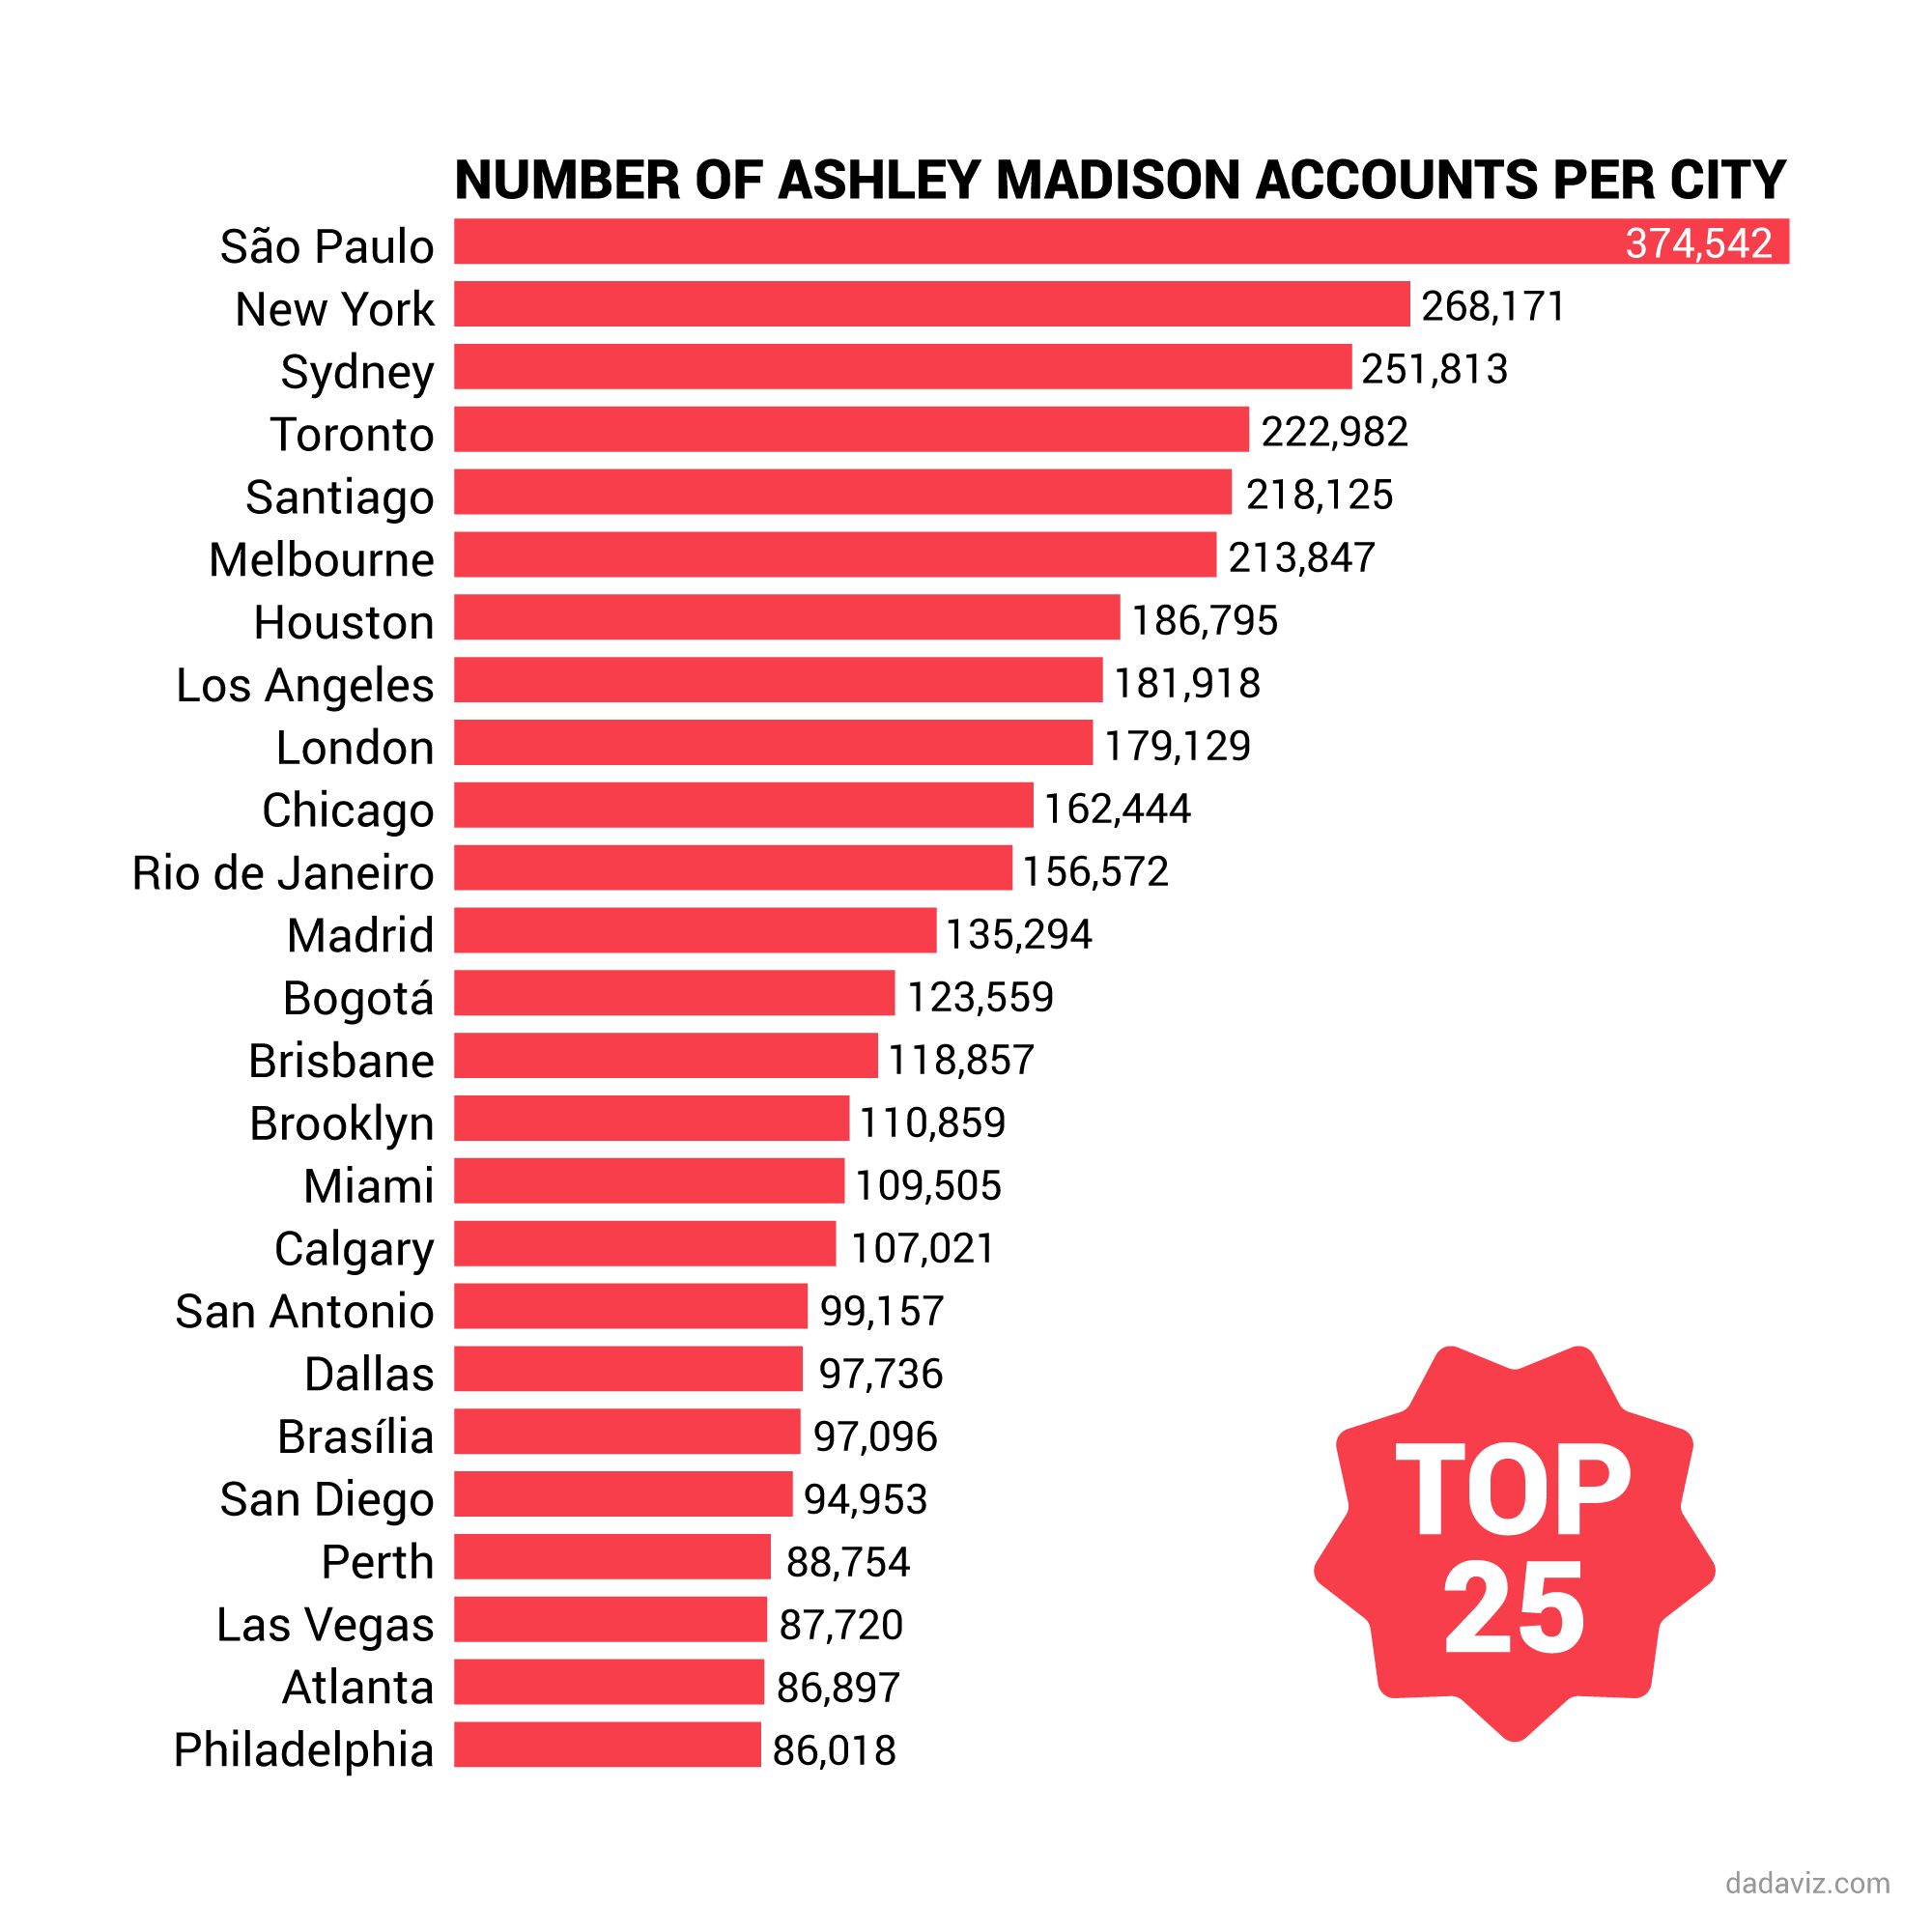 the 25 cities with the highest number of ashley ma 1439988861.47 9954552